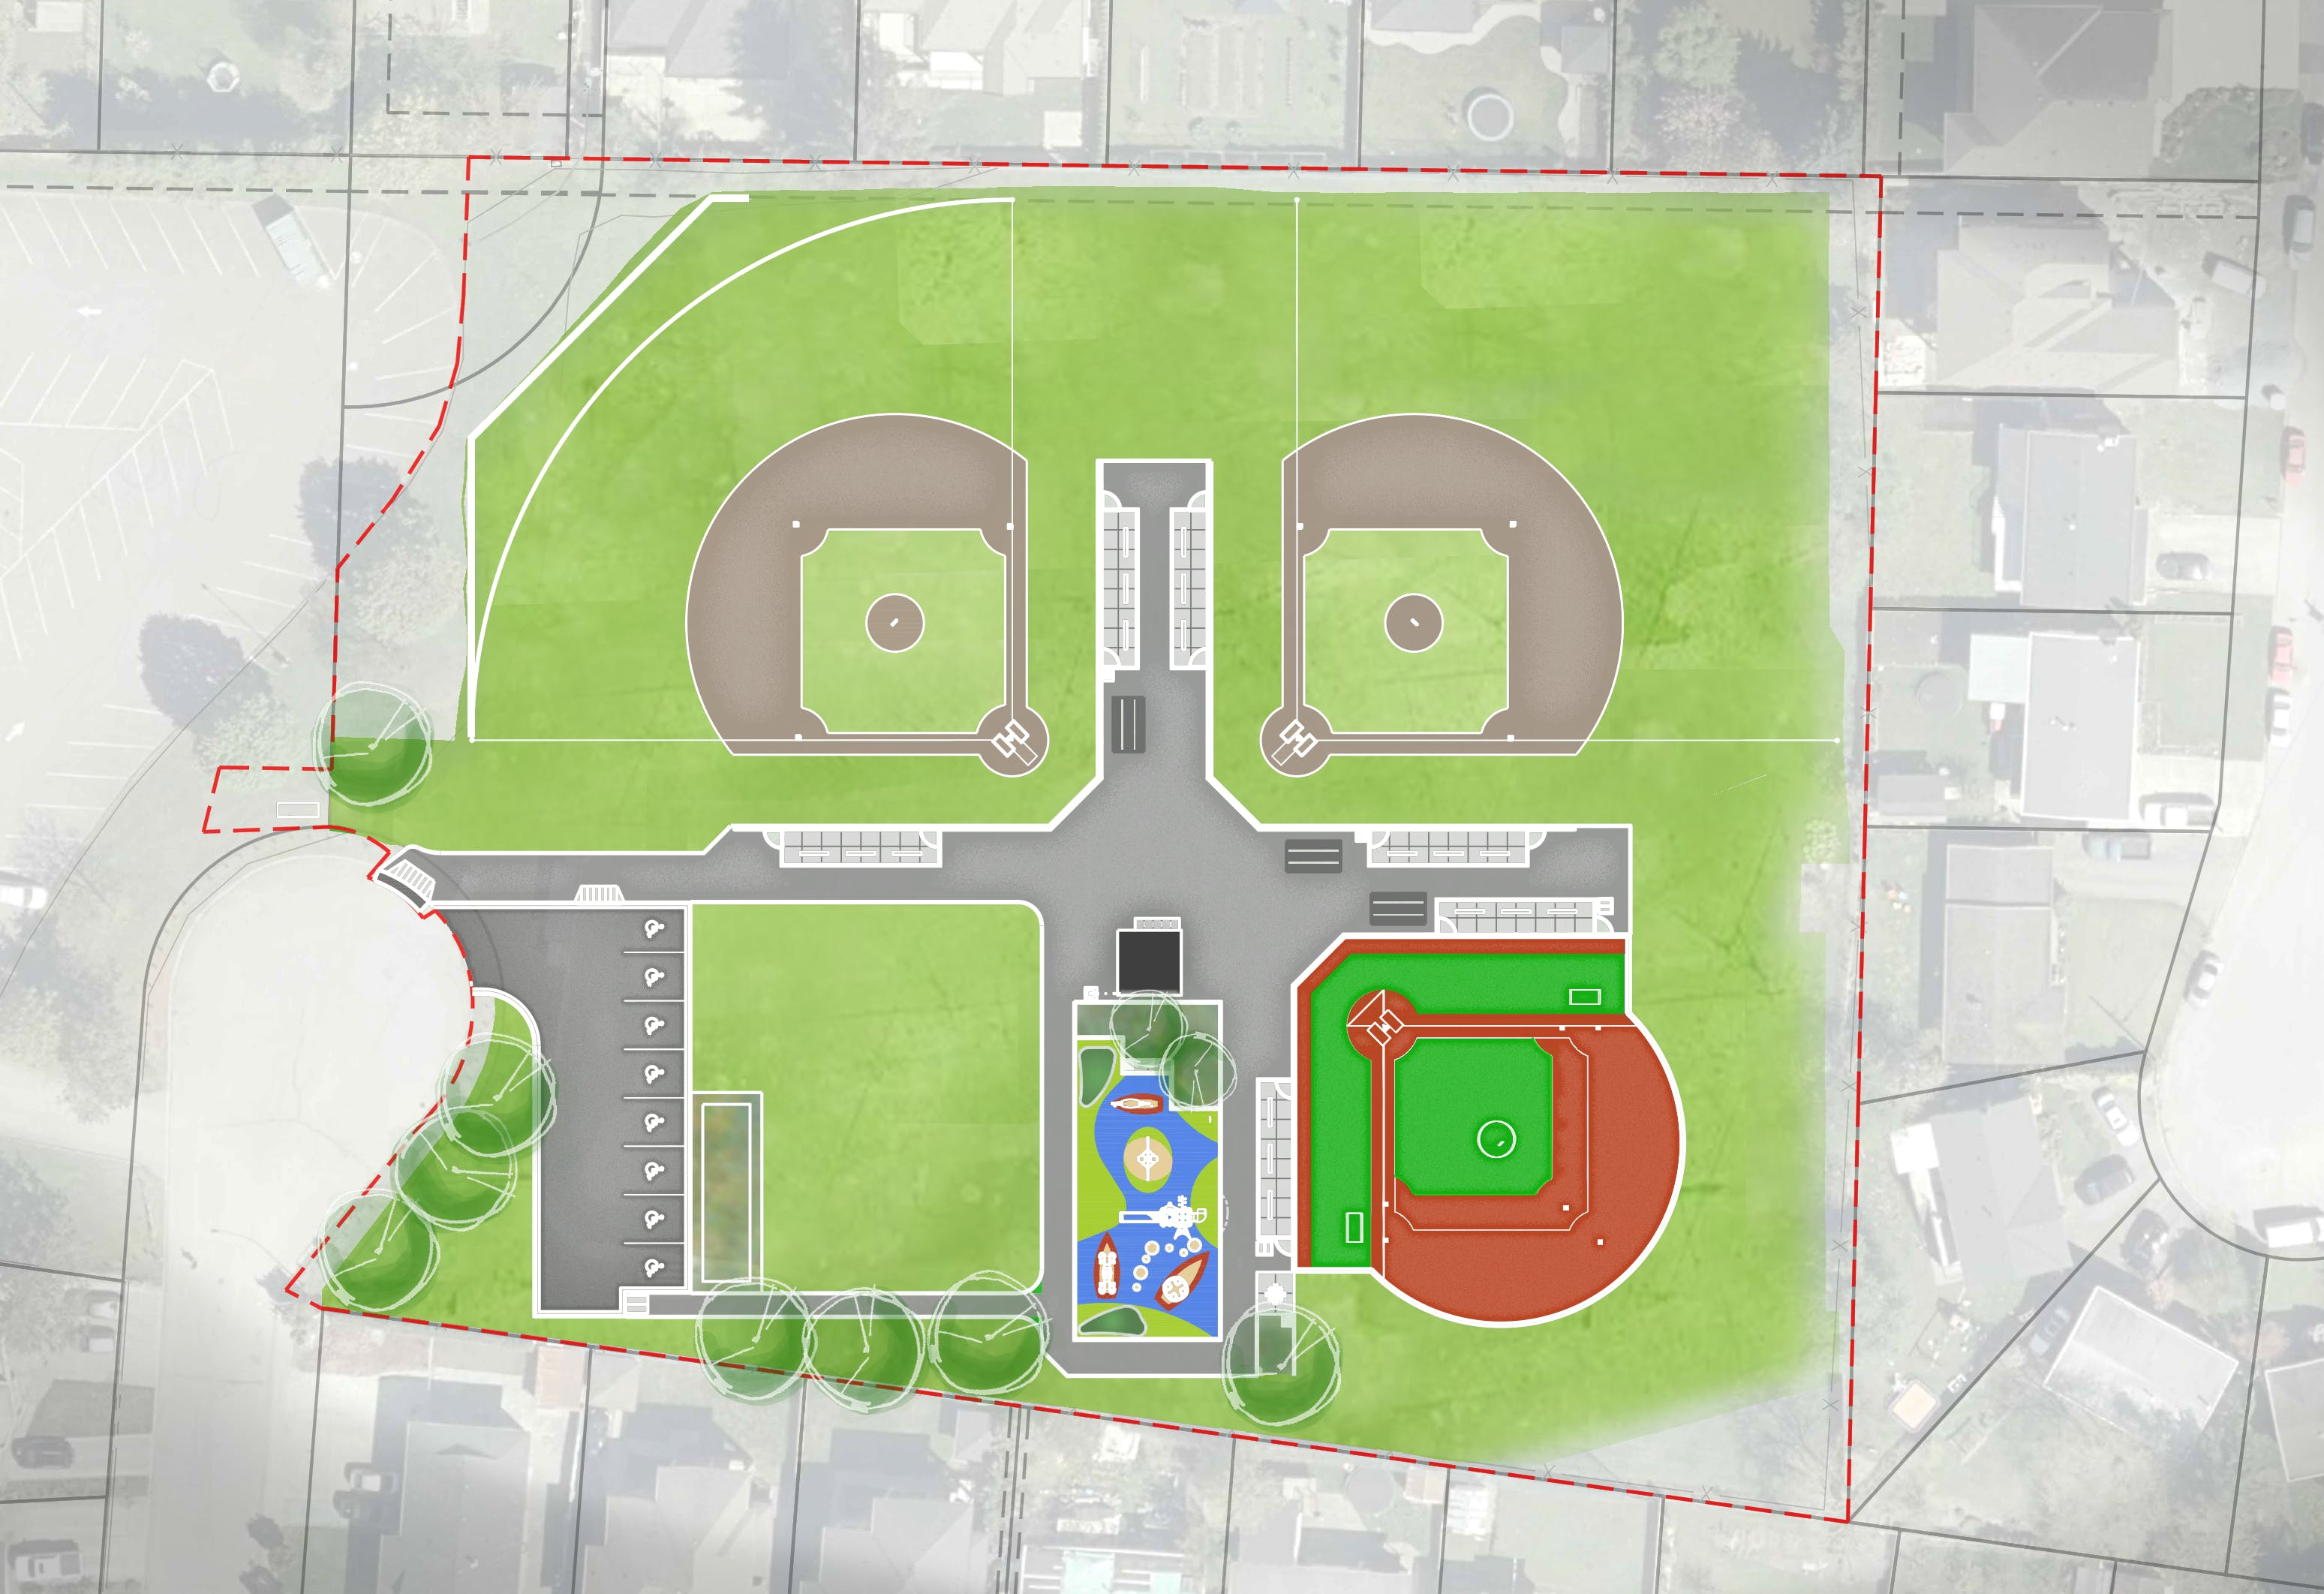 Grant Park Sports Field Project | Let's Talk Abbotsford